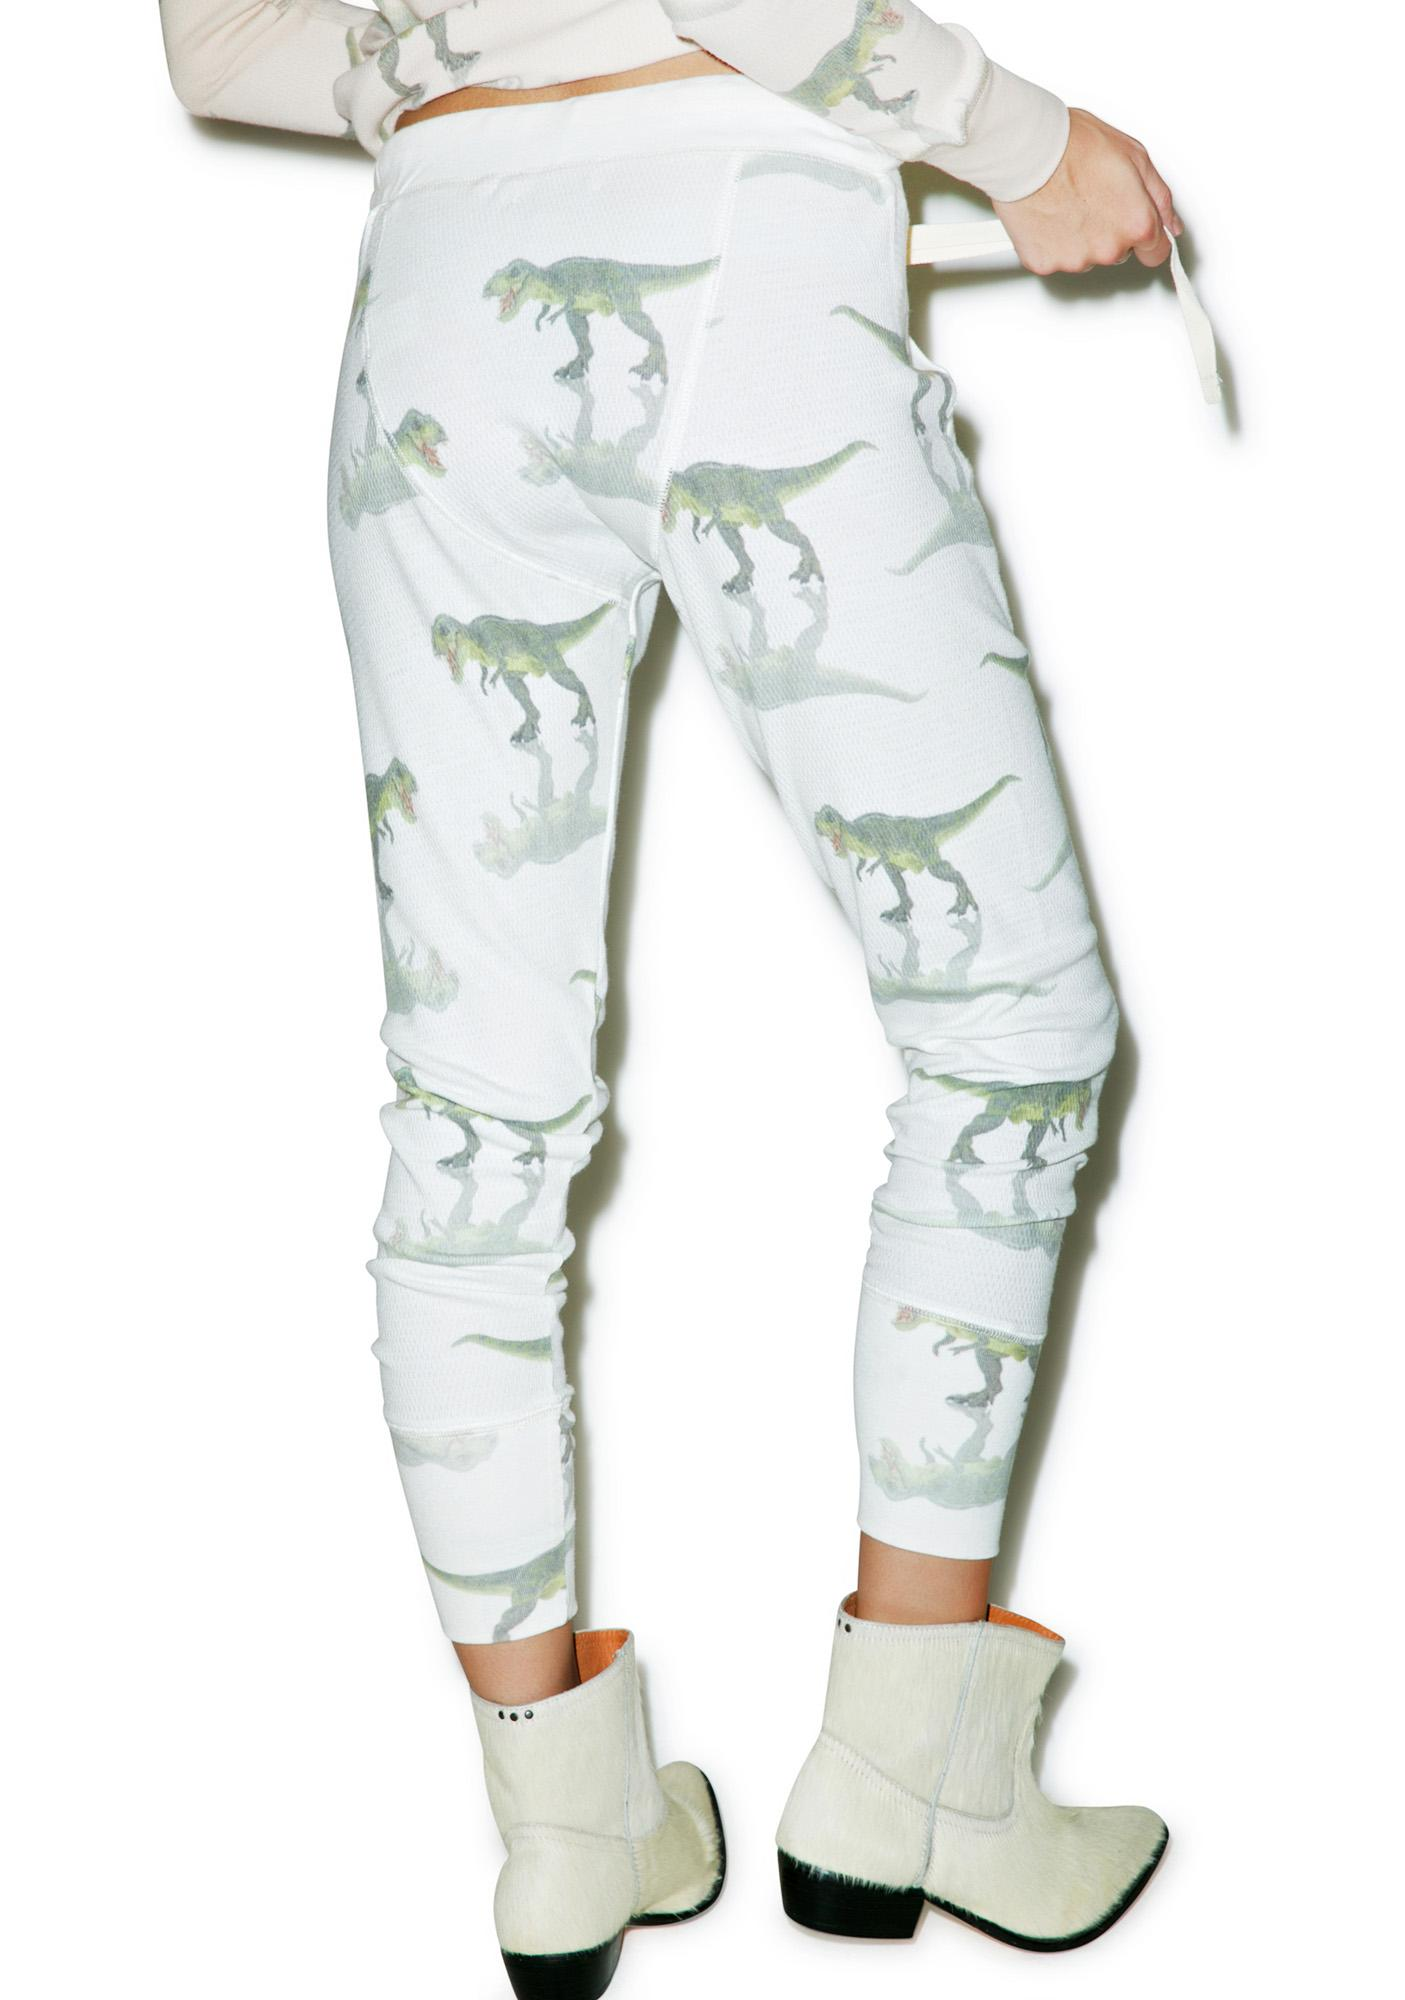 All Things Fabulous T Rex Long Janes